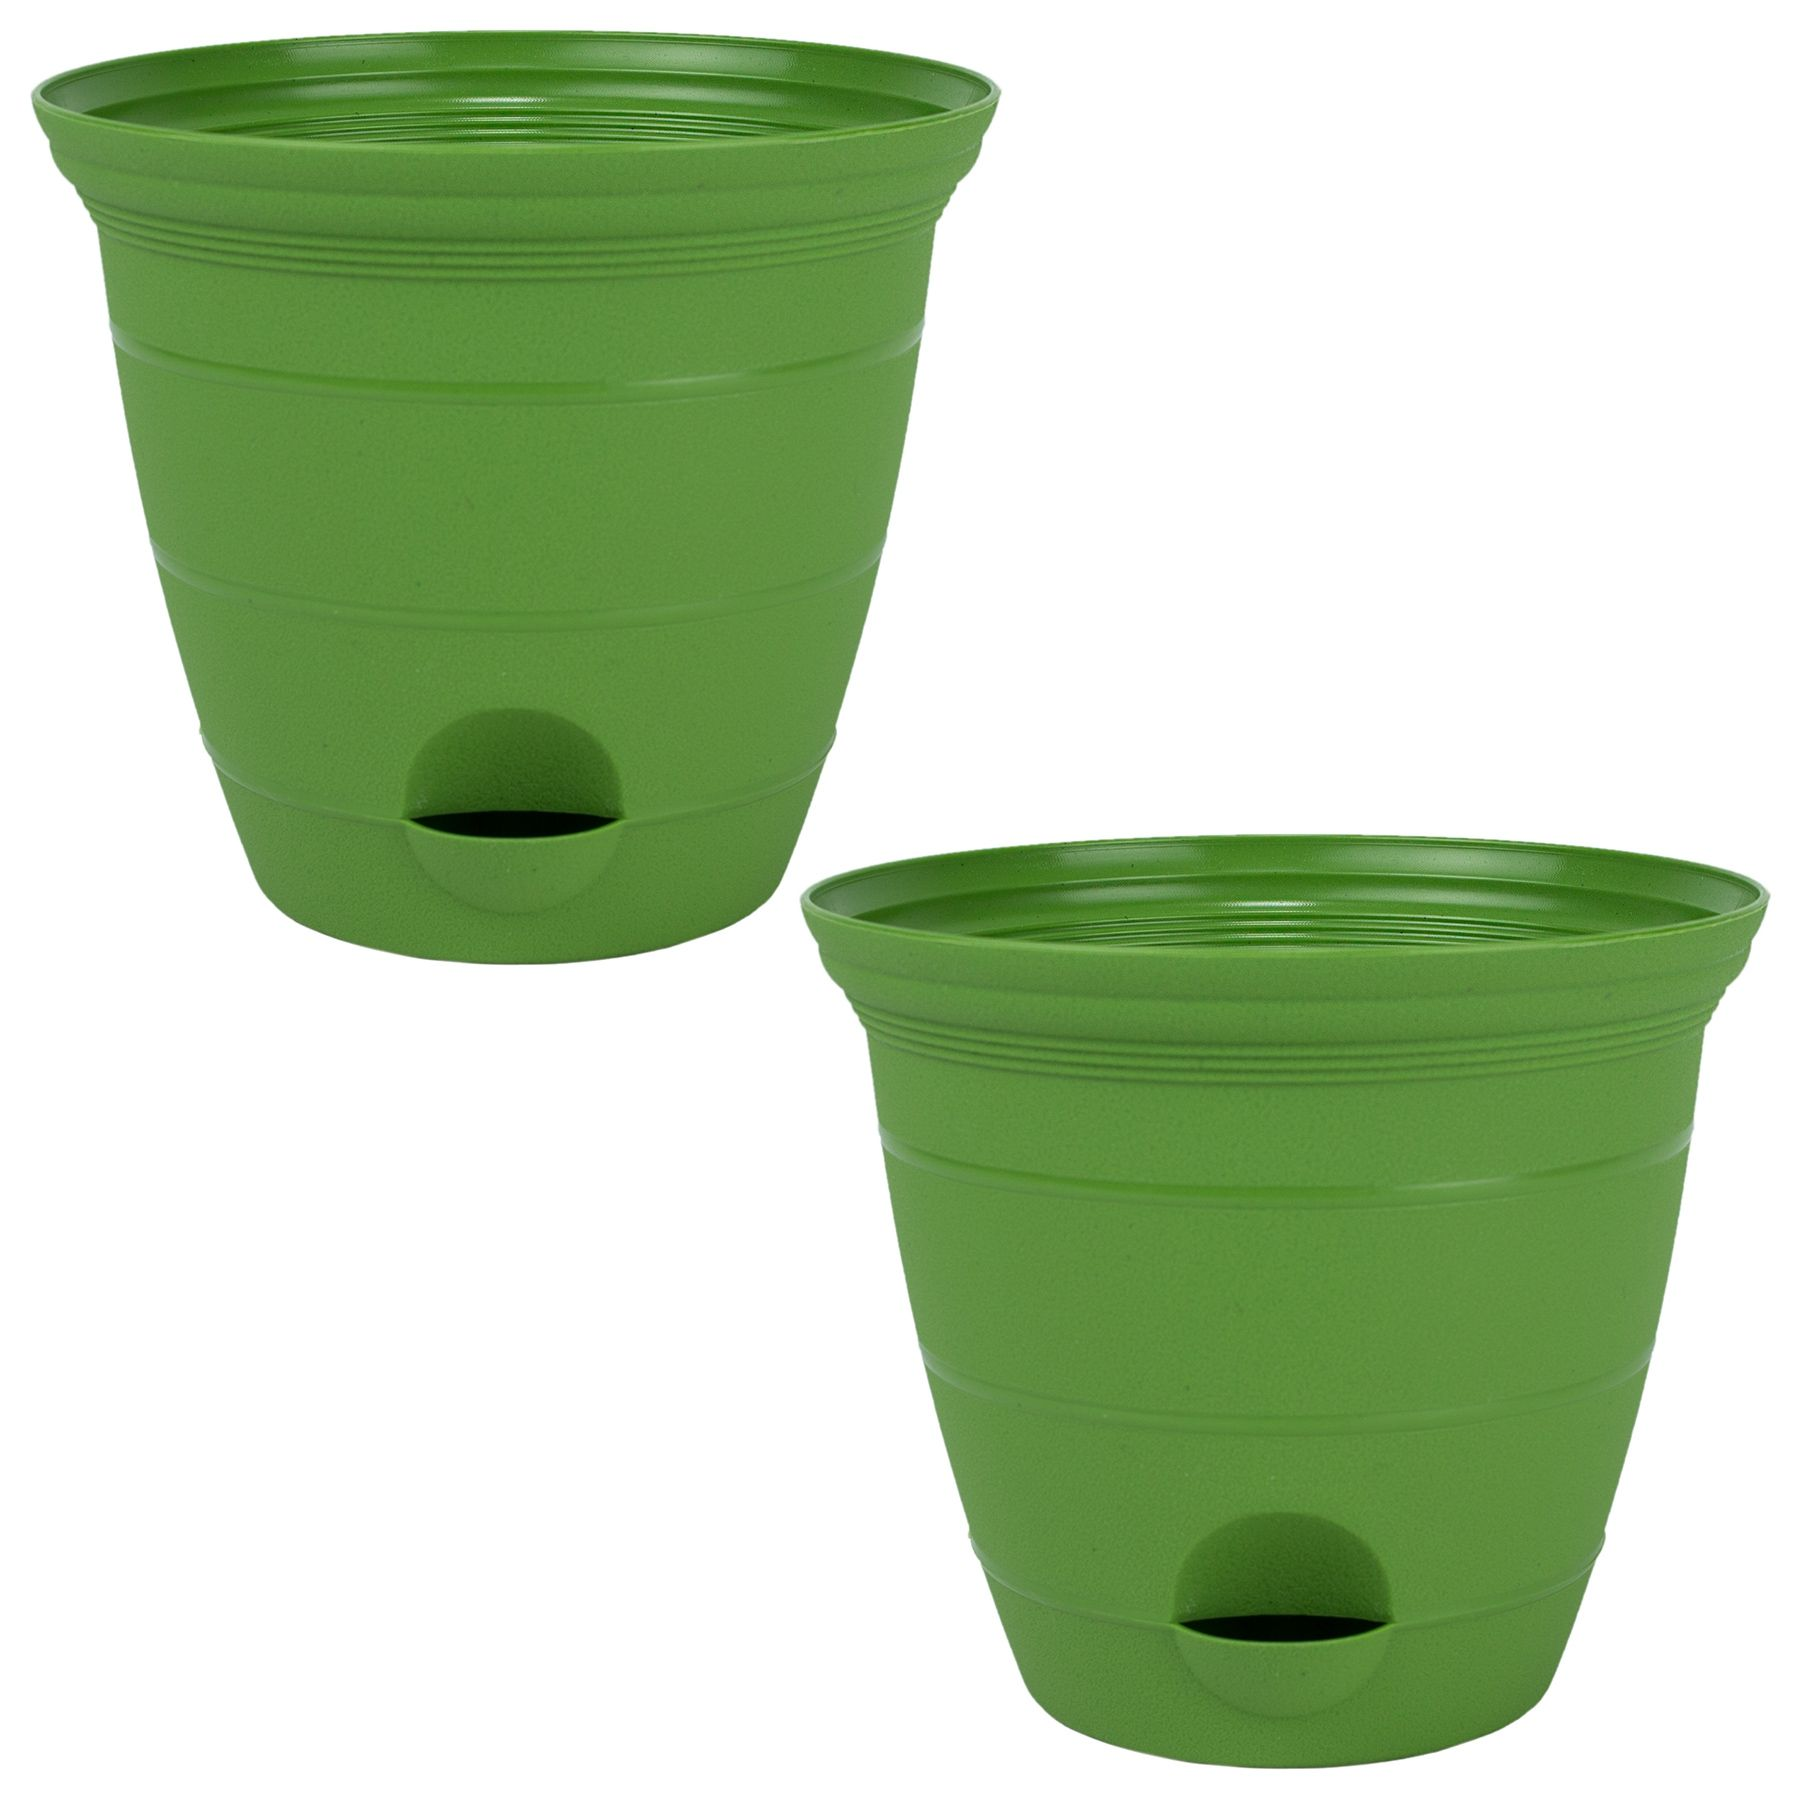 Misco 2 Pack 12 Inch Plastic Self Watering Terra Flower Plant Pot Garden Potted Planter Green In 2020 Planting Flowers Garden Pots Potted Plants